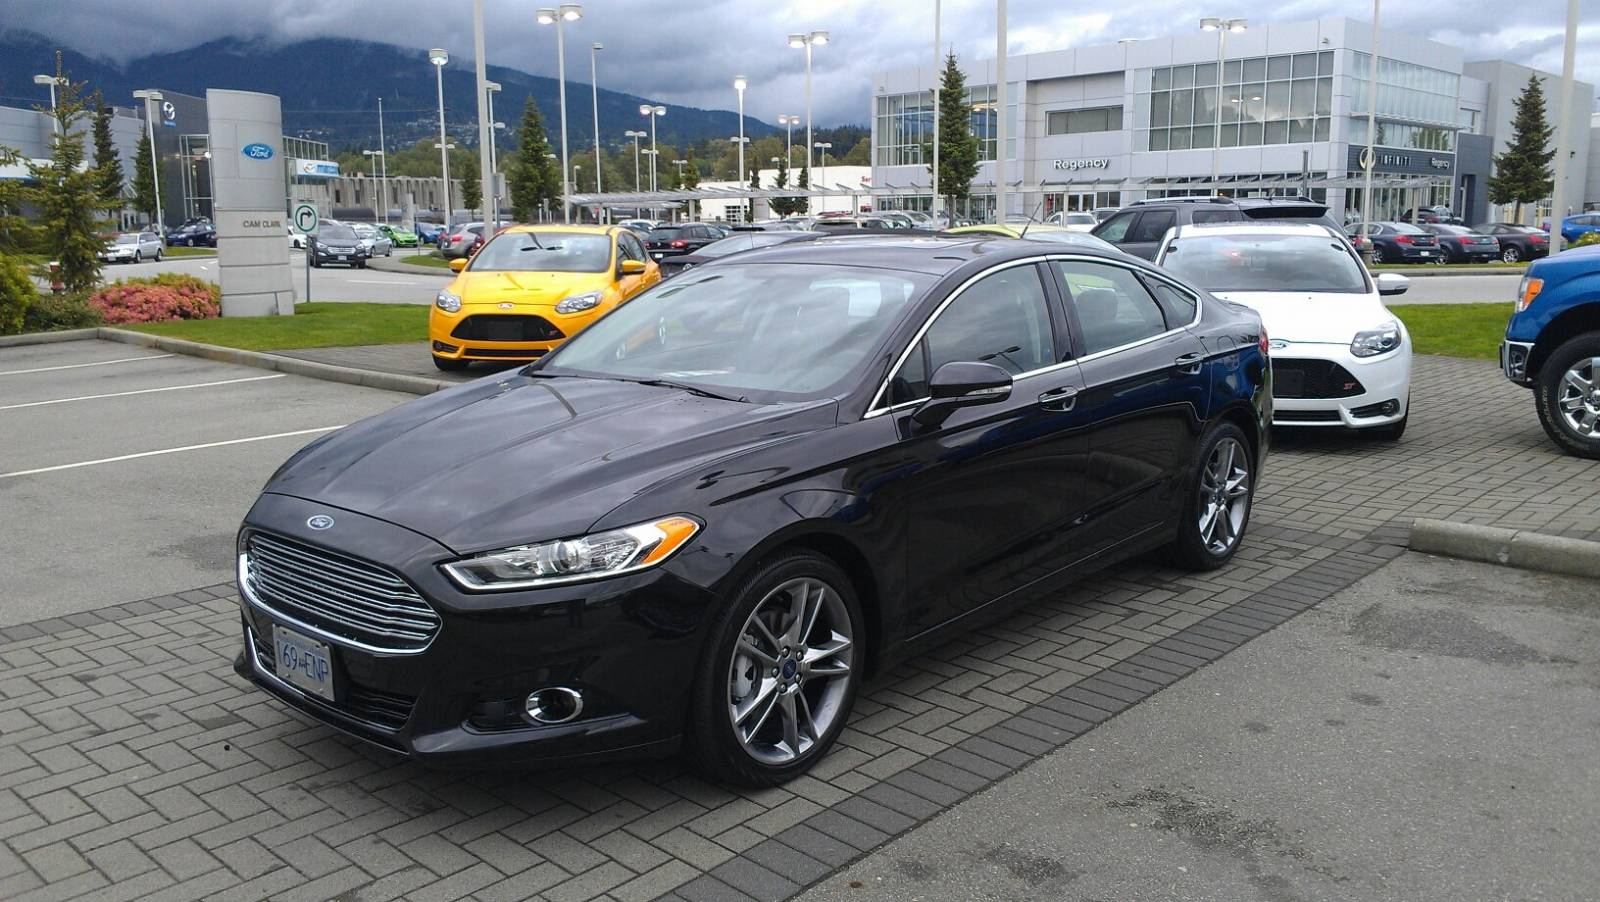 2015 Ford Fusion Rims >> 2013 Fusion Titanium - Ford Fusion Forum Member's Gallery - Ford Fusion Forum